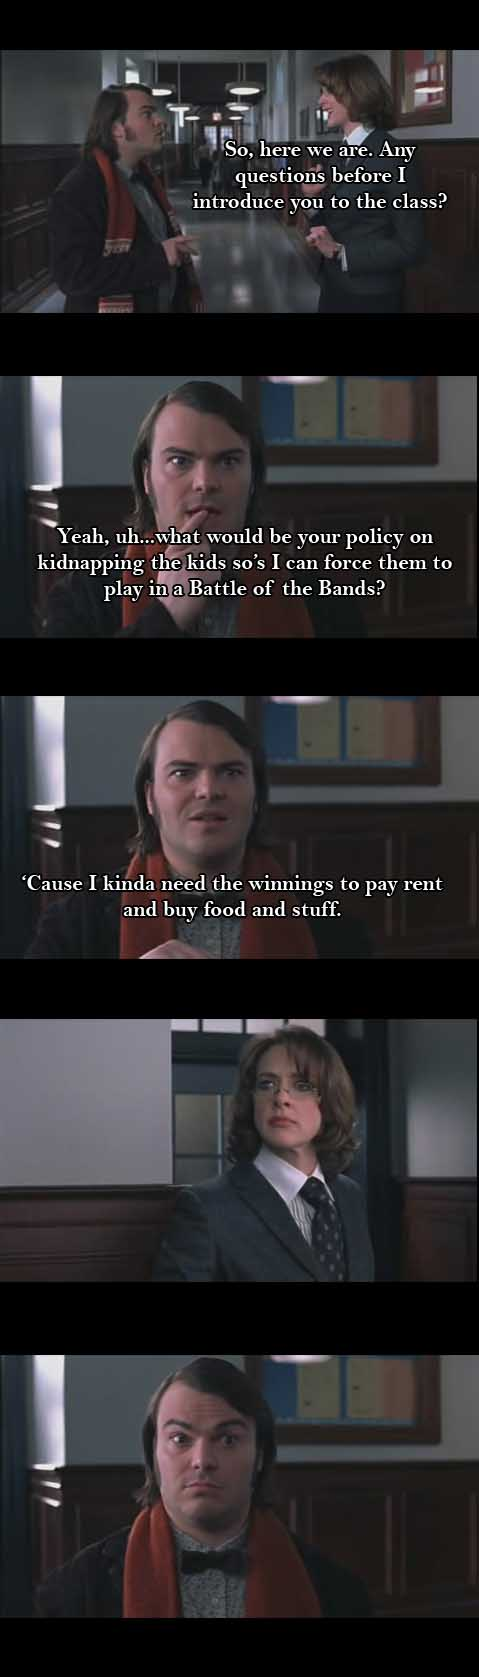 school of rock if movies were real